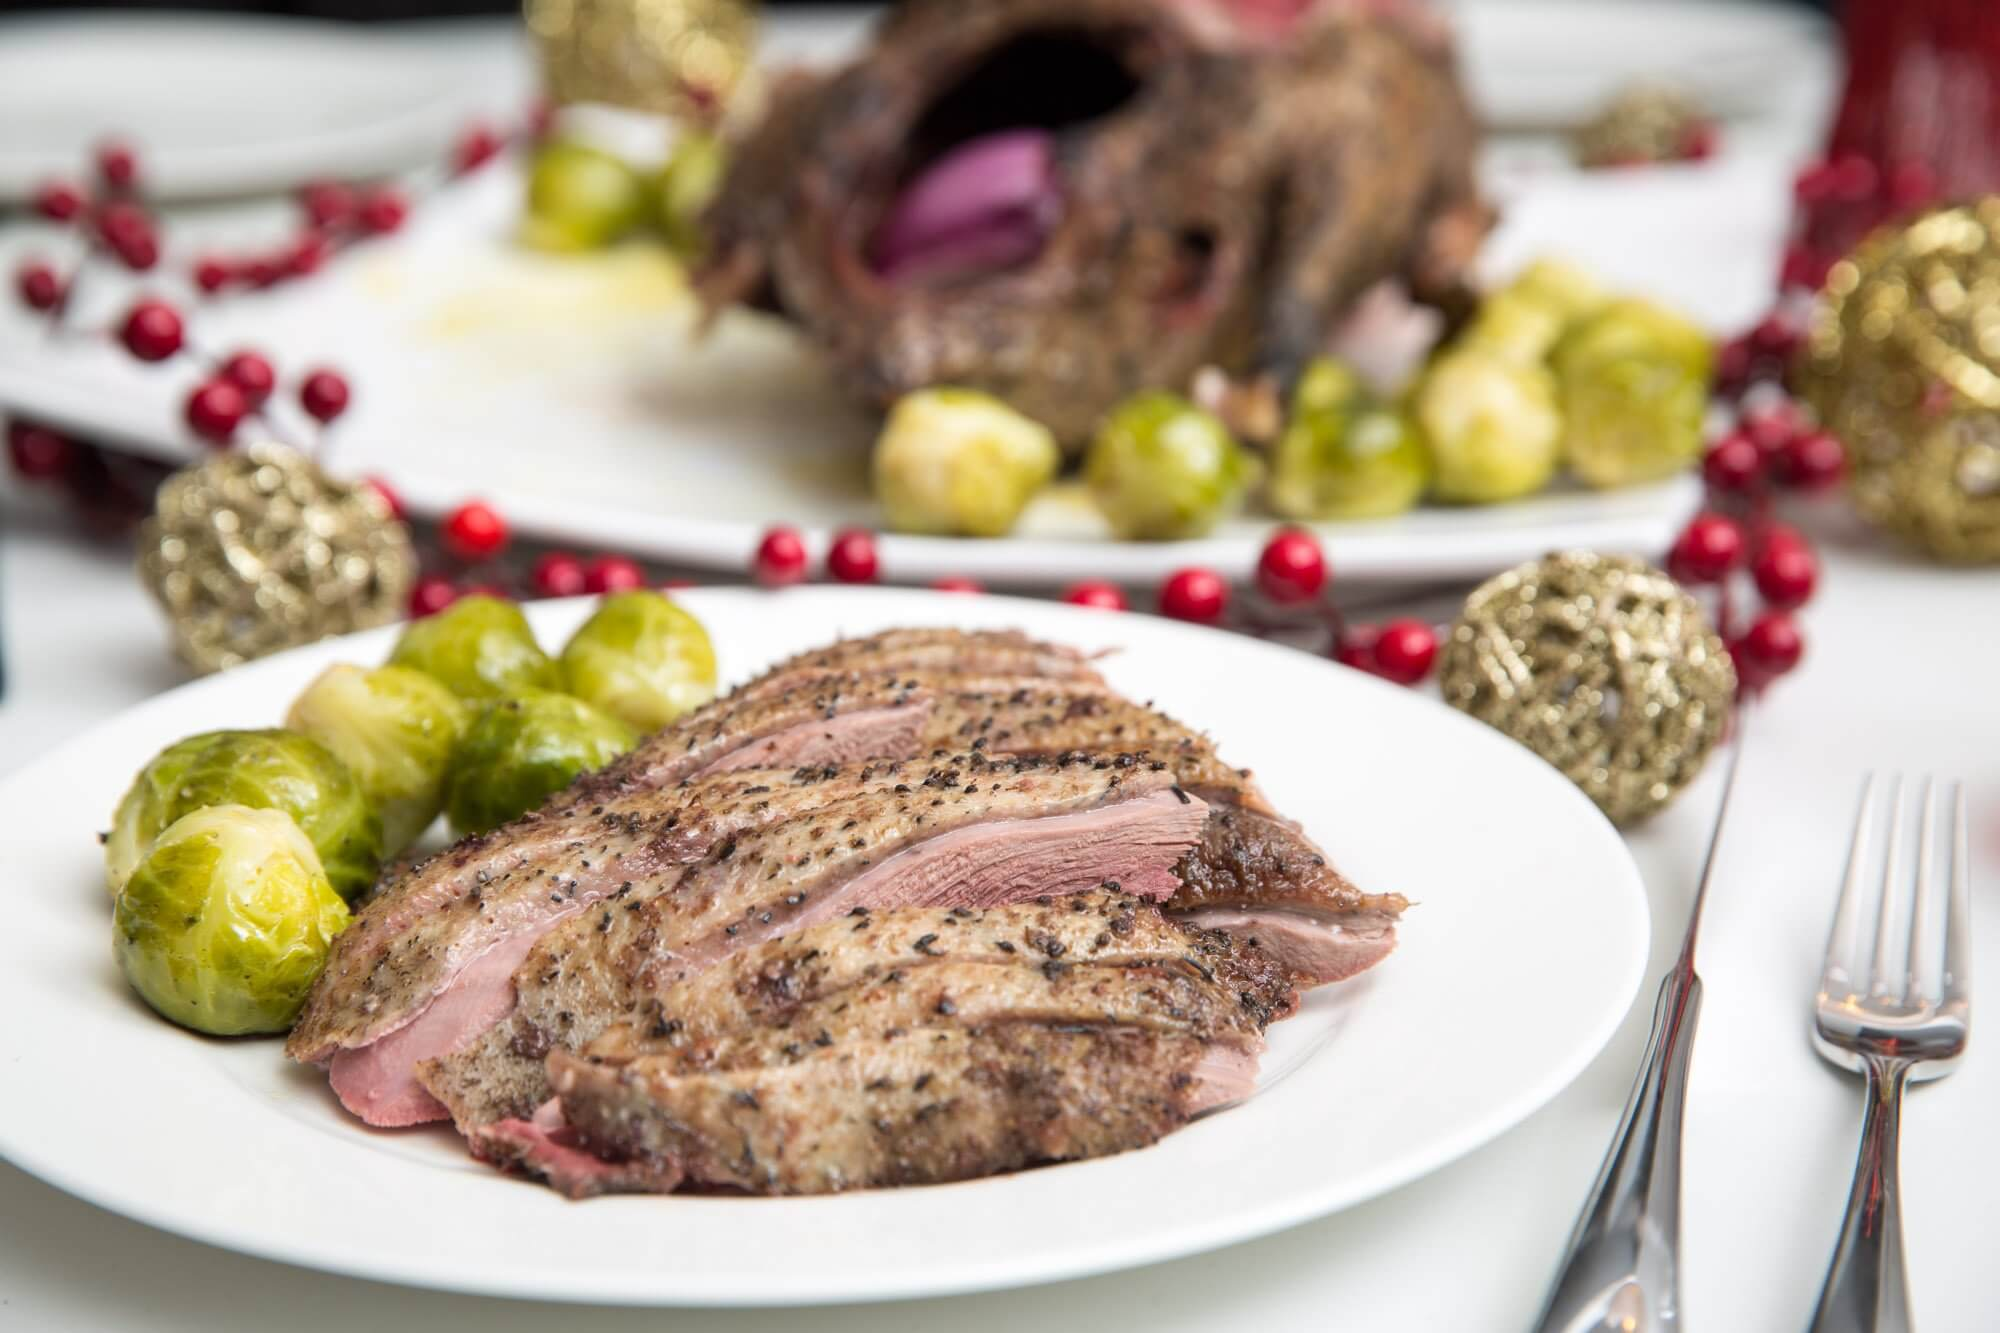 Roast Canada Goose with brussels sprouts